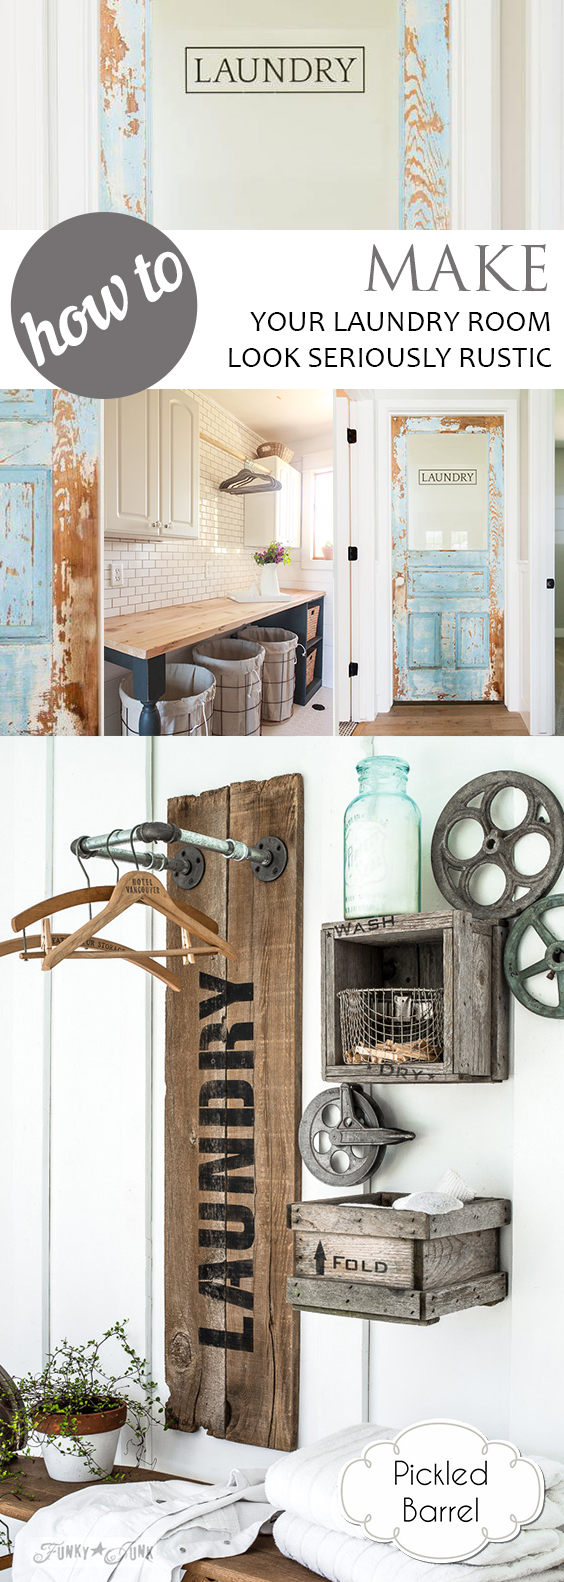 How to Make Your Laundry Room Look Seriously Rustic| DIY Laundry Room, Laundry Room, Laundry Room Storage, Laundry Room Decorations, Laundry Room Layout, Small Laundry Room Ideas, Laundry Room Organization, Remodel Your Laundry Room, How to Make Your Laundry Room Look Rustic, Rustic Laundry Room Ideas, Popular Pin